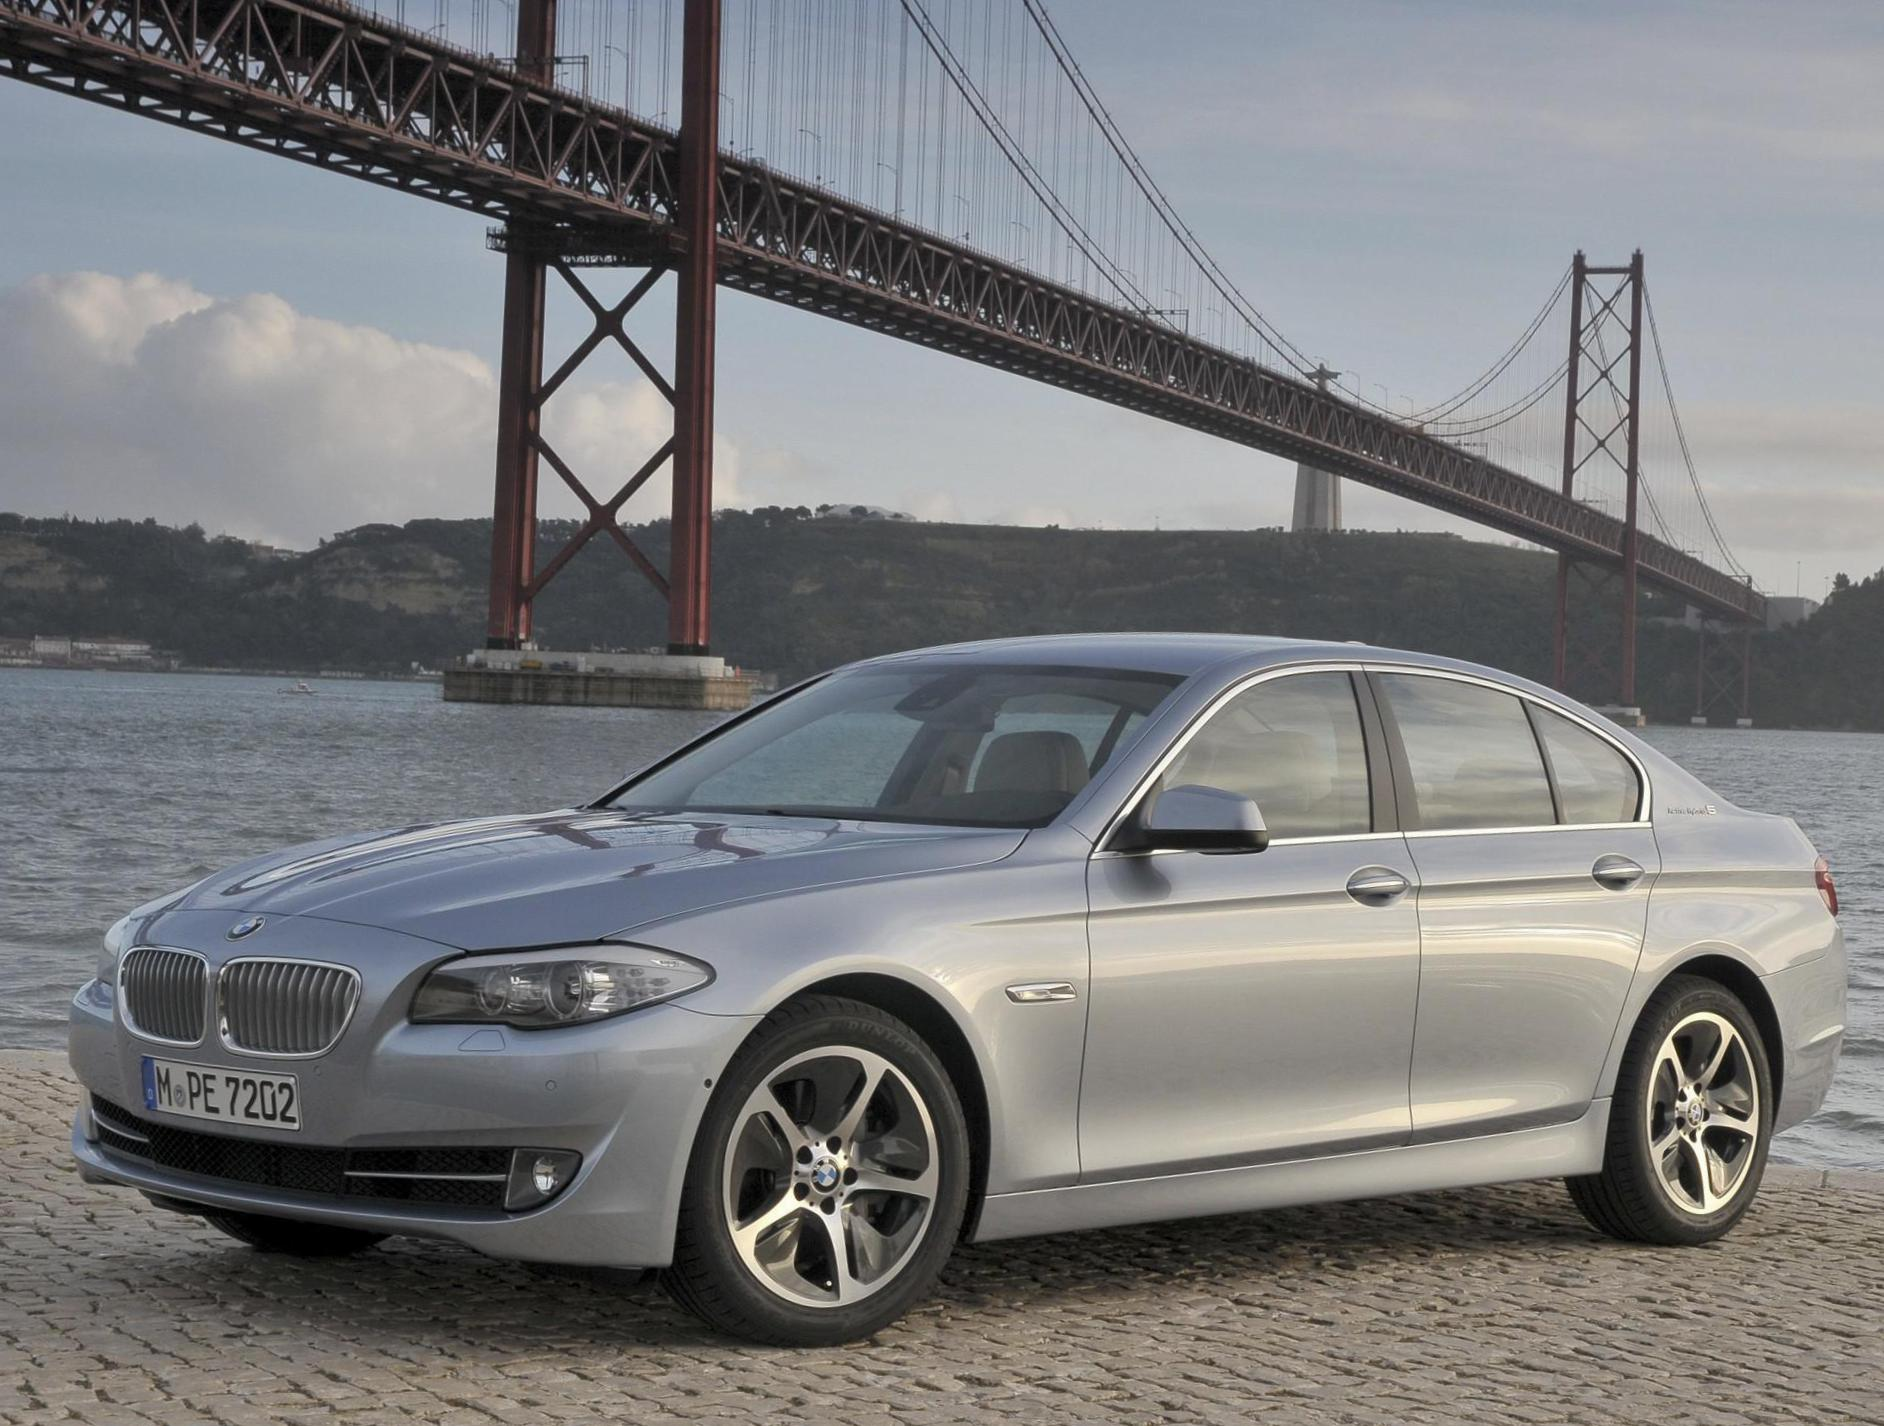 BMW ActiveHybrid 5 (F10) model hatchback